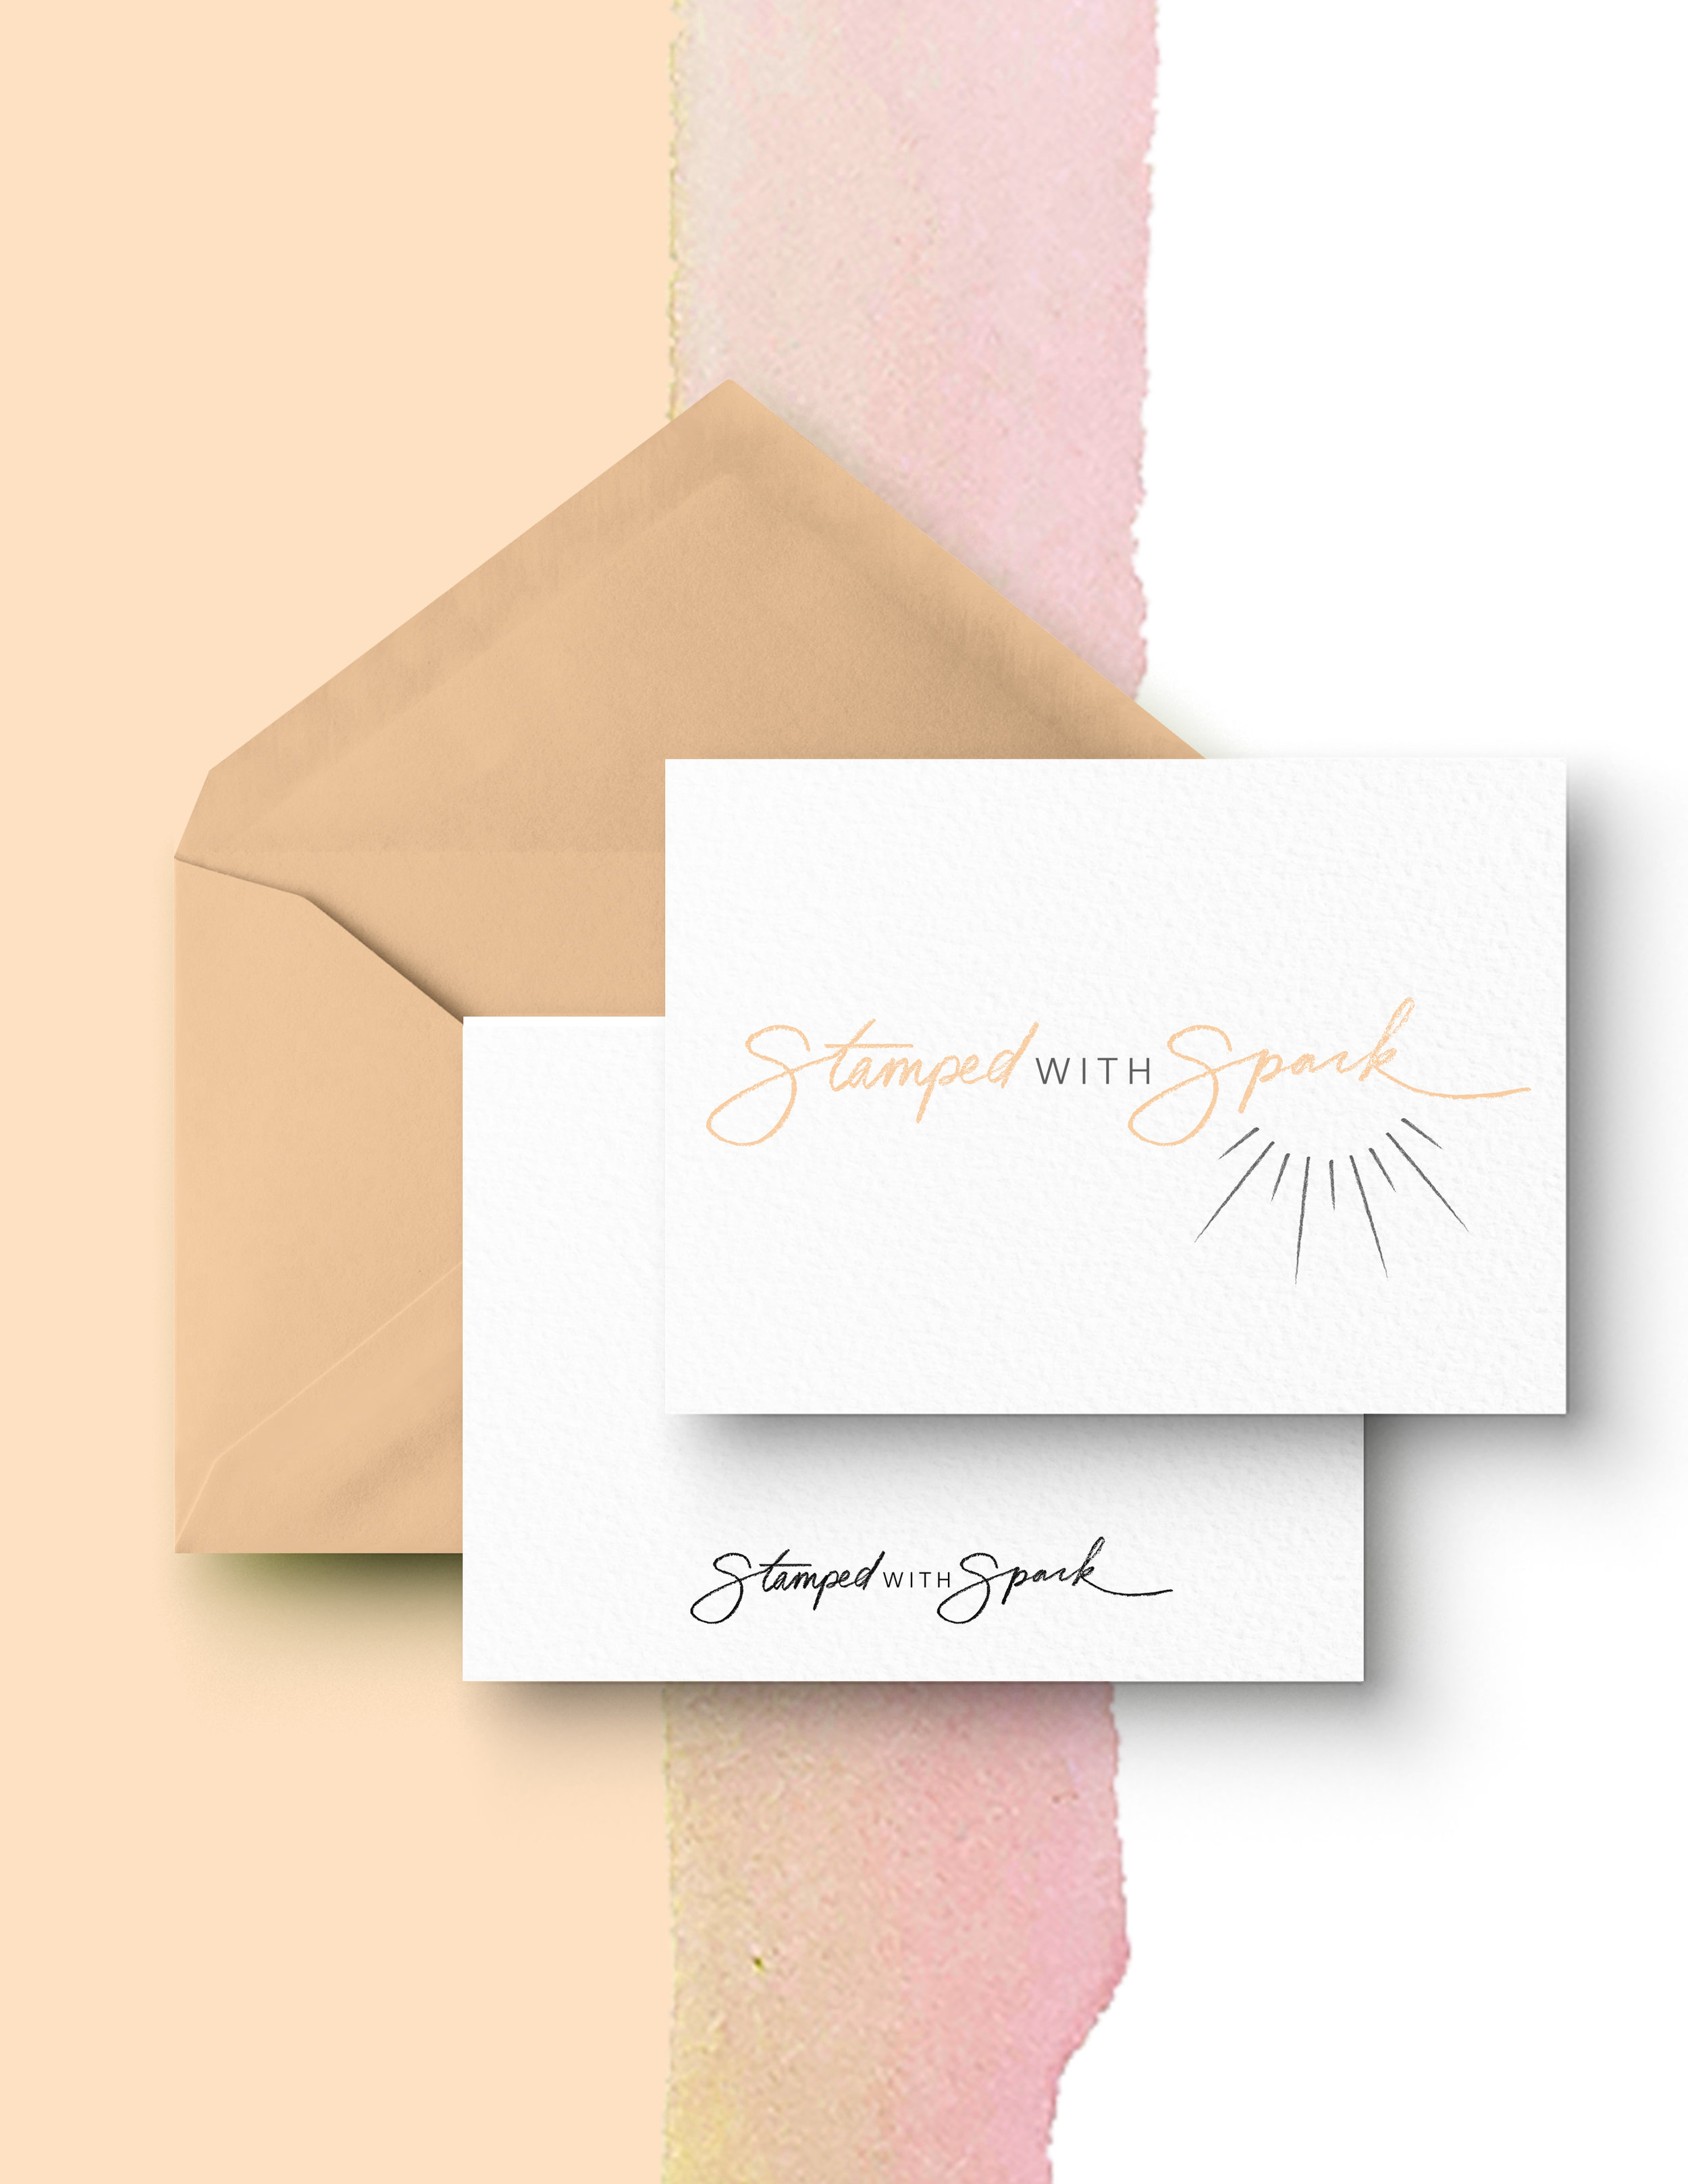 Stamped with Spark: Empowerment Blog   Logo design featuring custom hand lettering